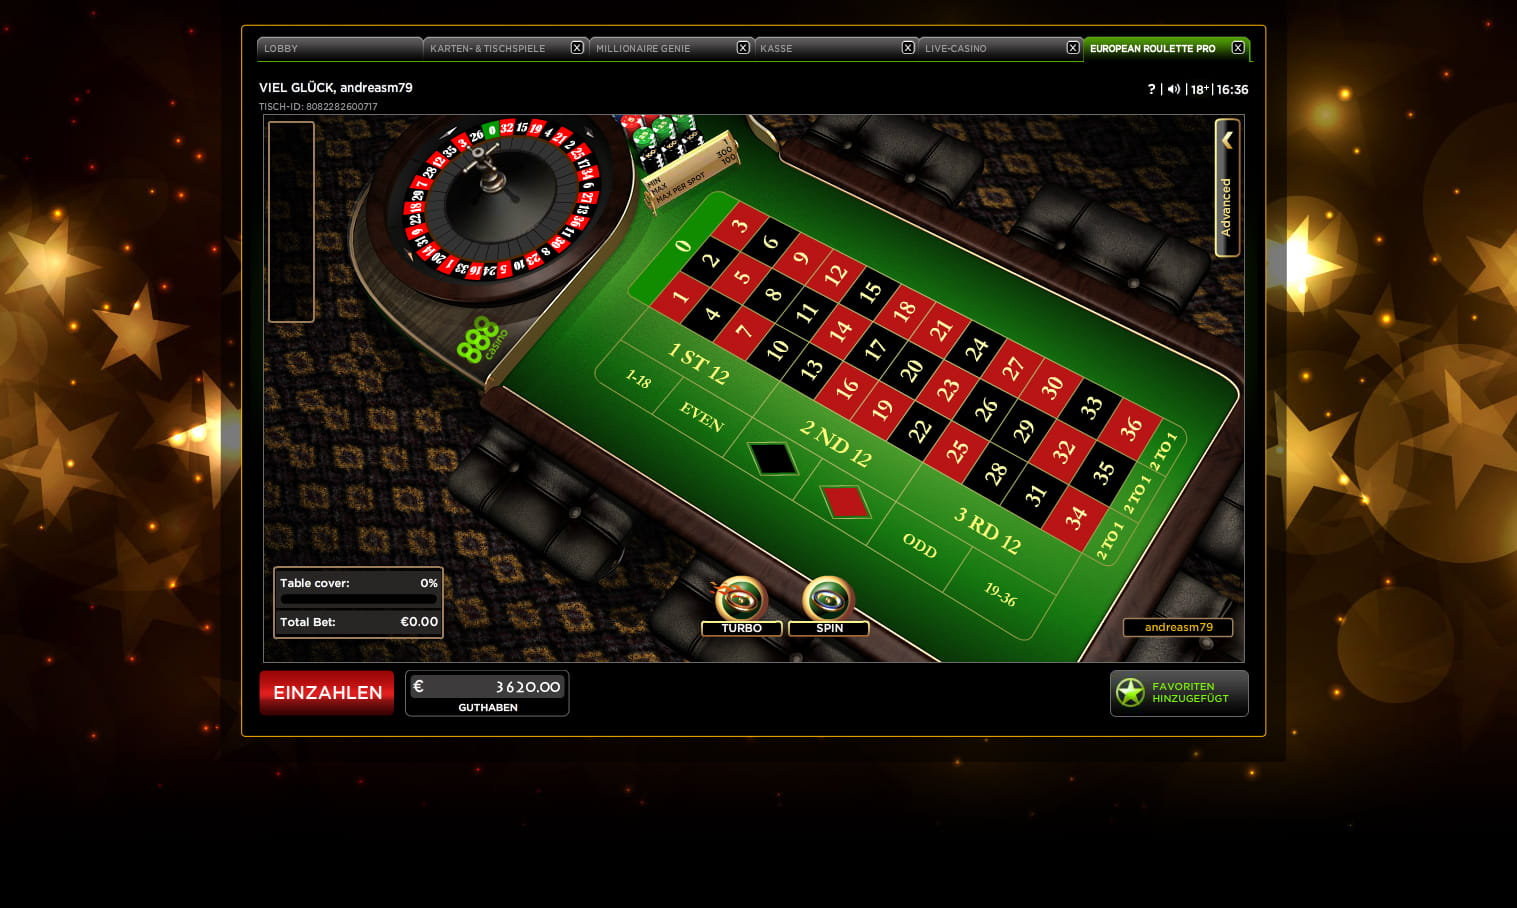 deutsche online casinos roulette